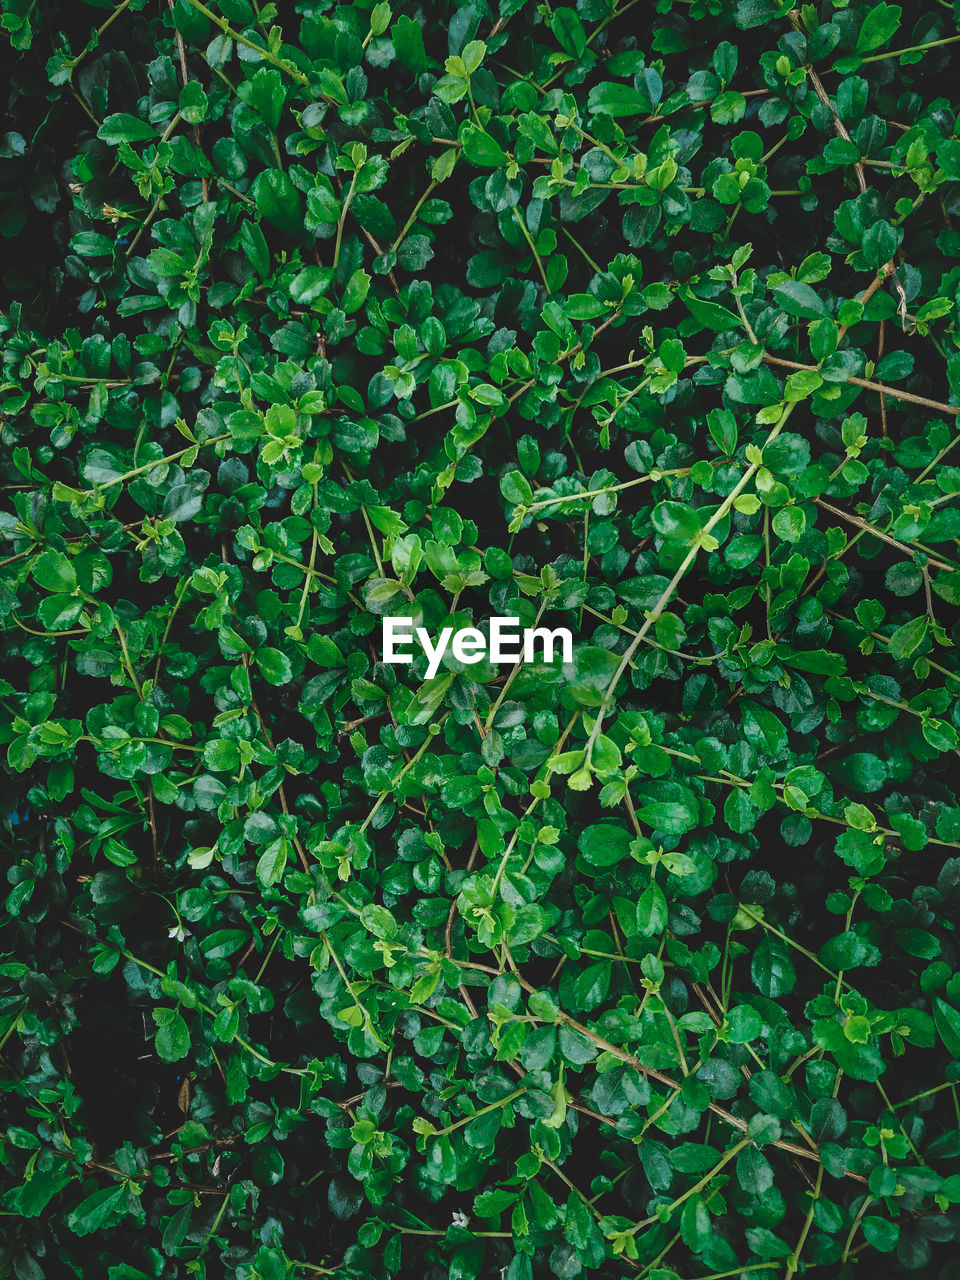 green color, growth, plant, plant part, leaf, beauty in nature, nature, no people, day, full frame, high angle view, outdoors, tranquility, backgrounds, freshness, land, lush foliage, foliage, food and drink, abundance, clover